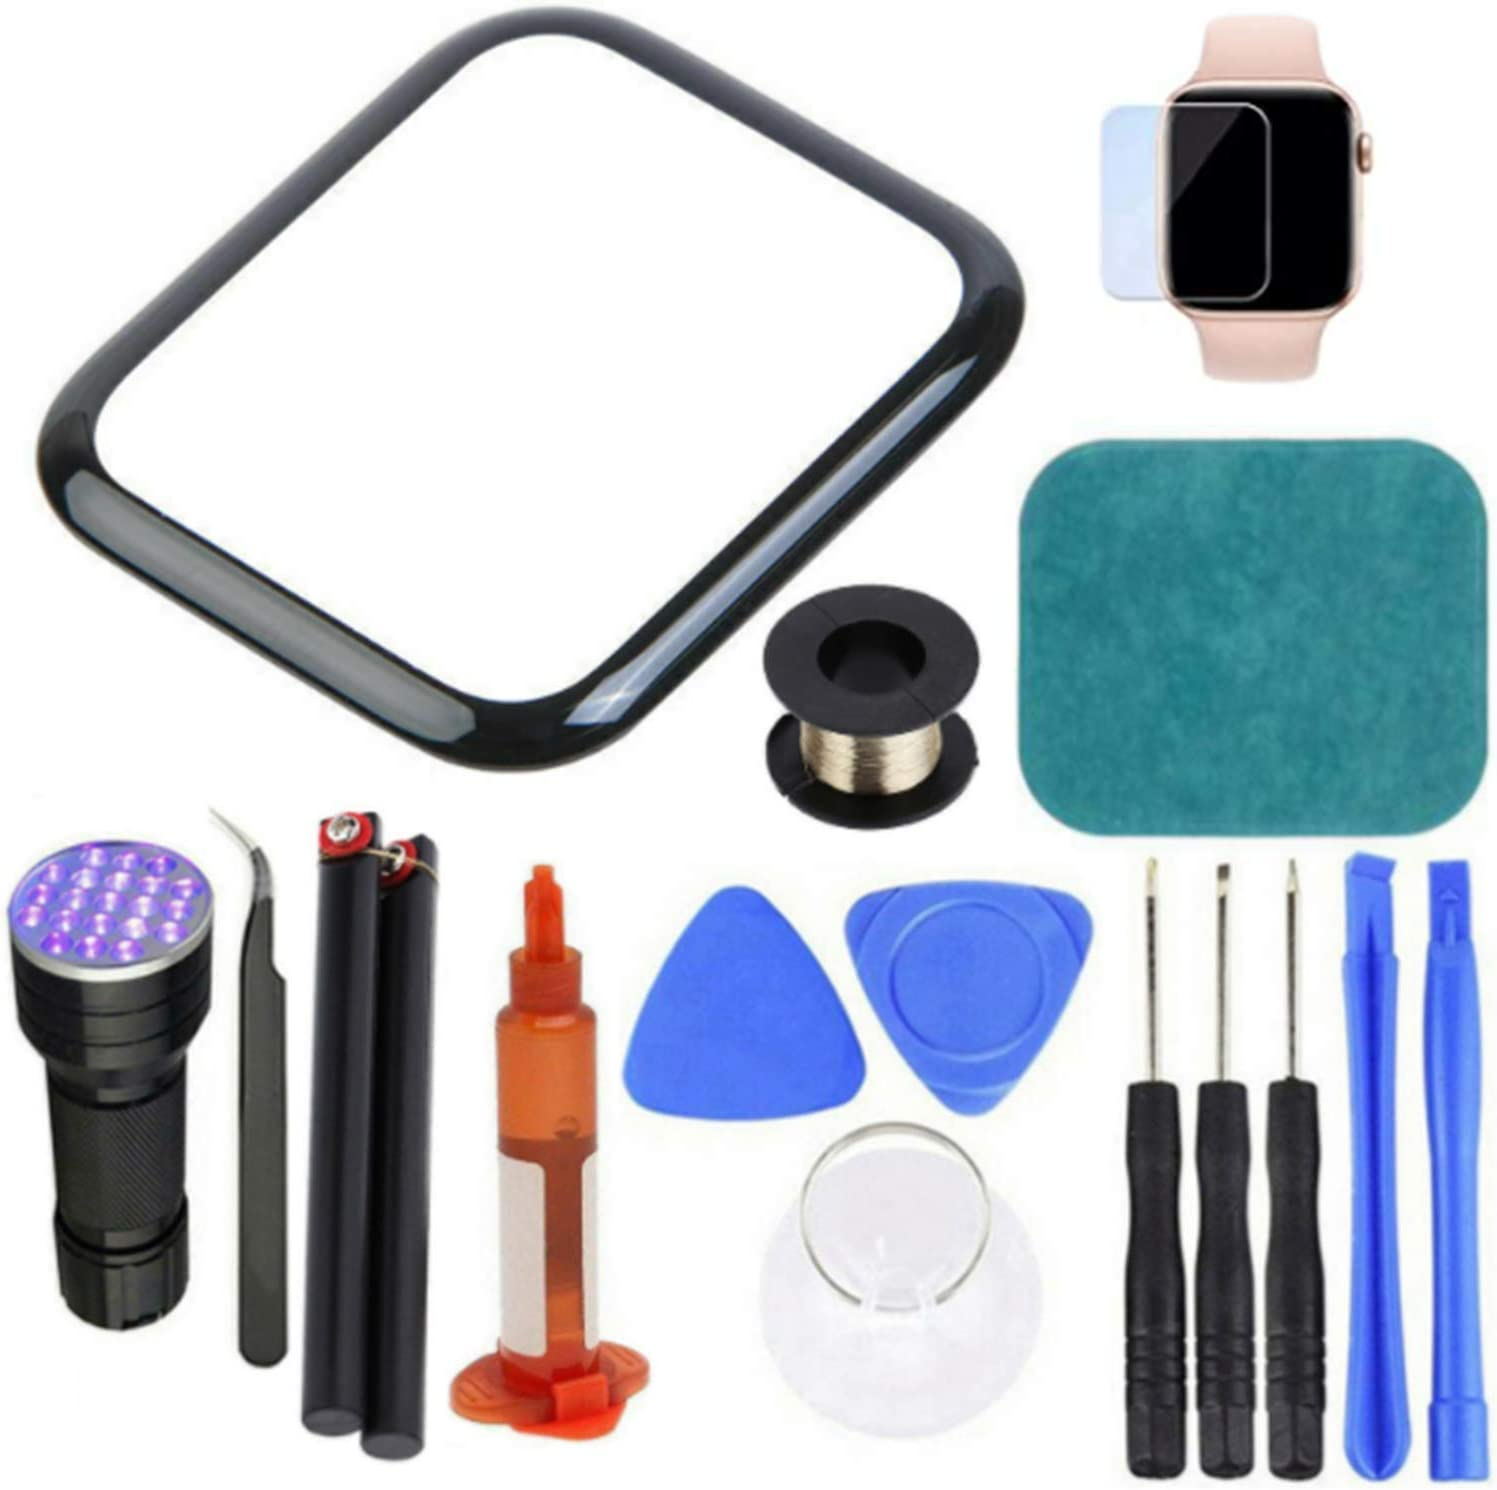 Goodliest Precise Out Front LCD Glass Cover Replacement Touch Screen Repair Kit Compatible with Apple Watch 2/3/4/5/6 Series 38mm 42mm 40mm 44mm Compatible with Apple Watch SE 44mm